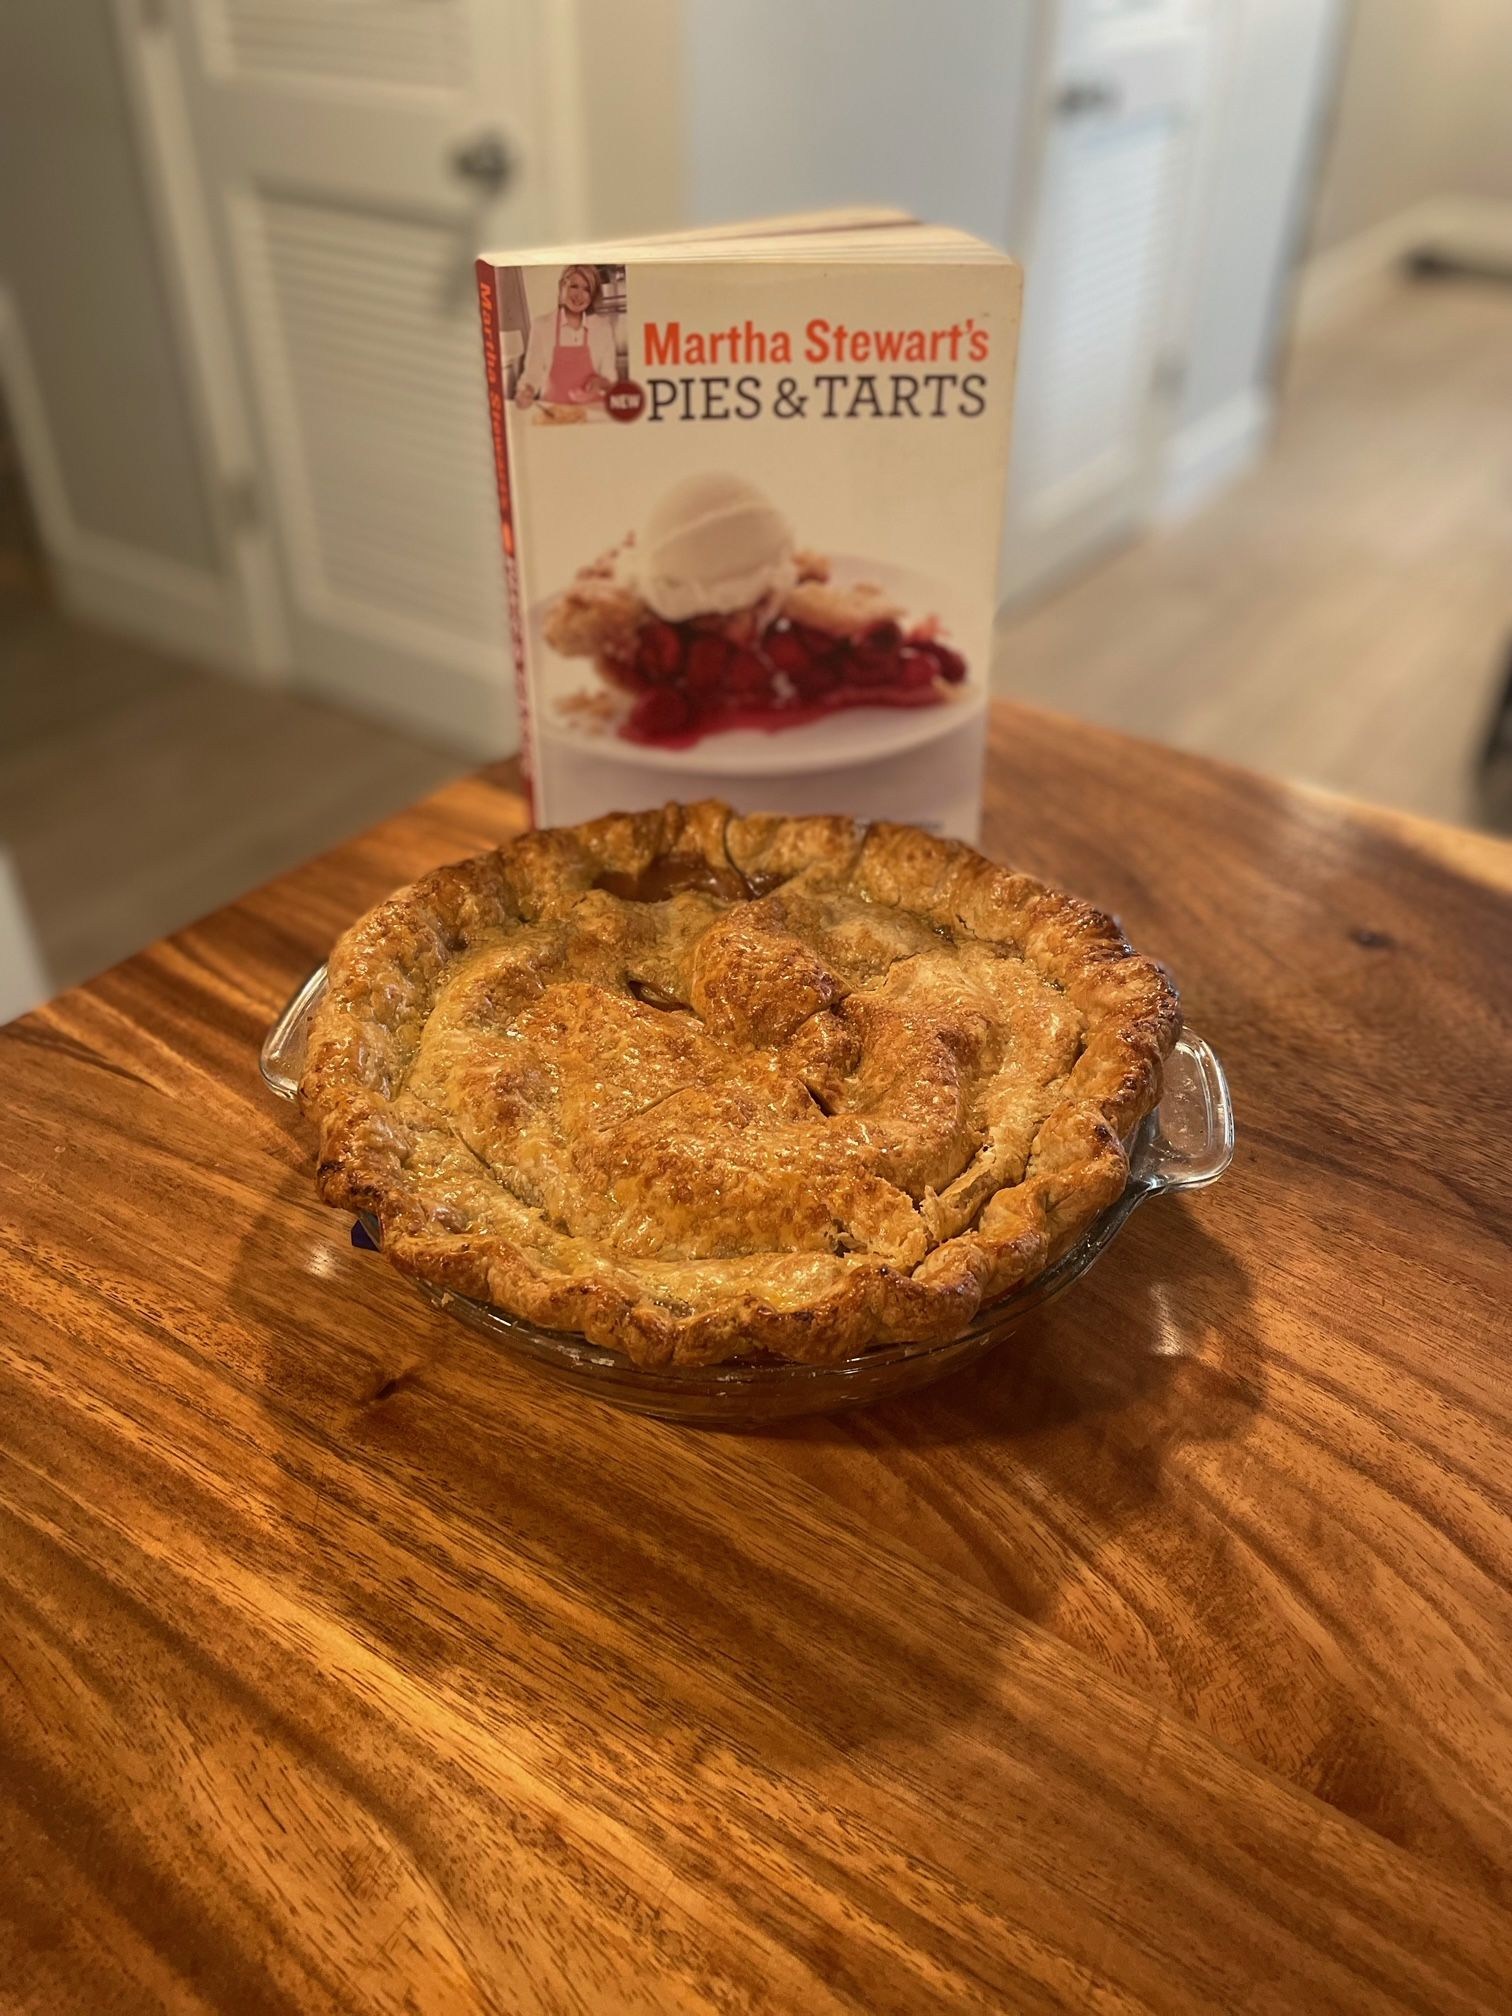 Photo of apple pie with Martha Stewart New Pies and Tarts cookbook